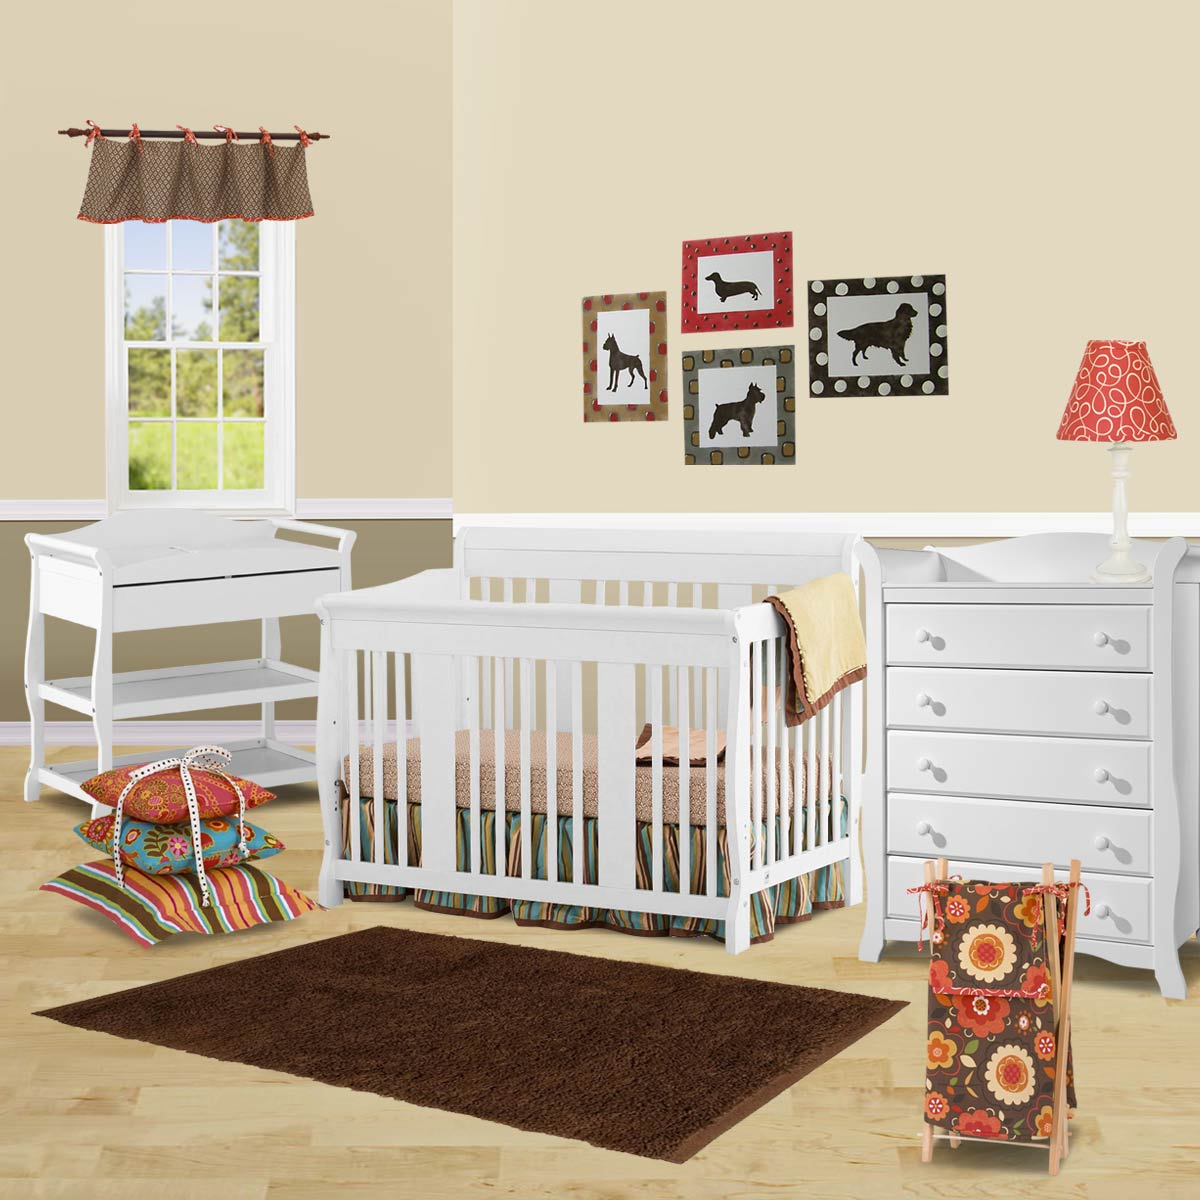 Storkcraft 3 Piece Nursery Set Tuscany Convertible Crib Aspen Changing Table And Avalon 5 Drawer Dresser In White